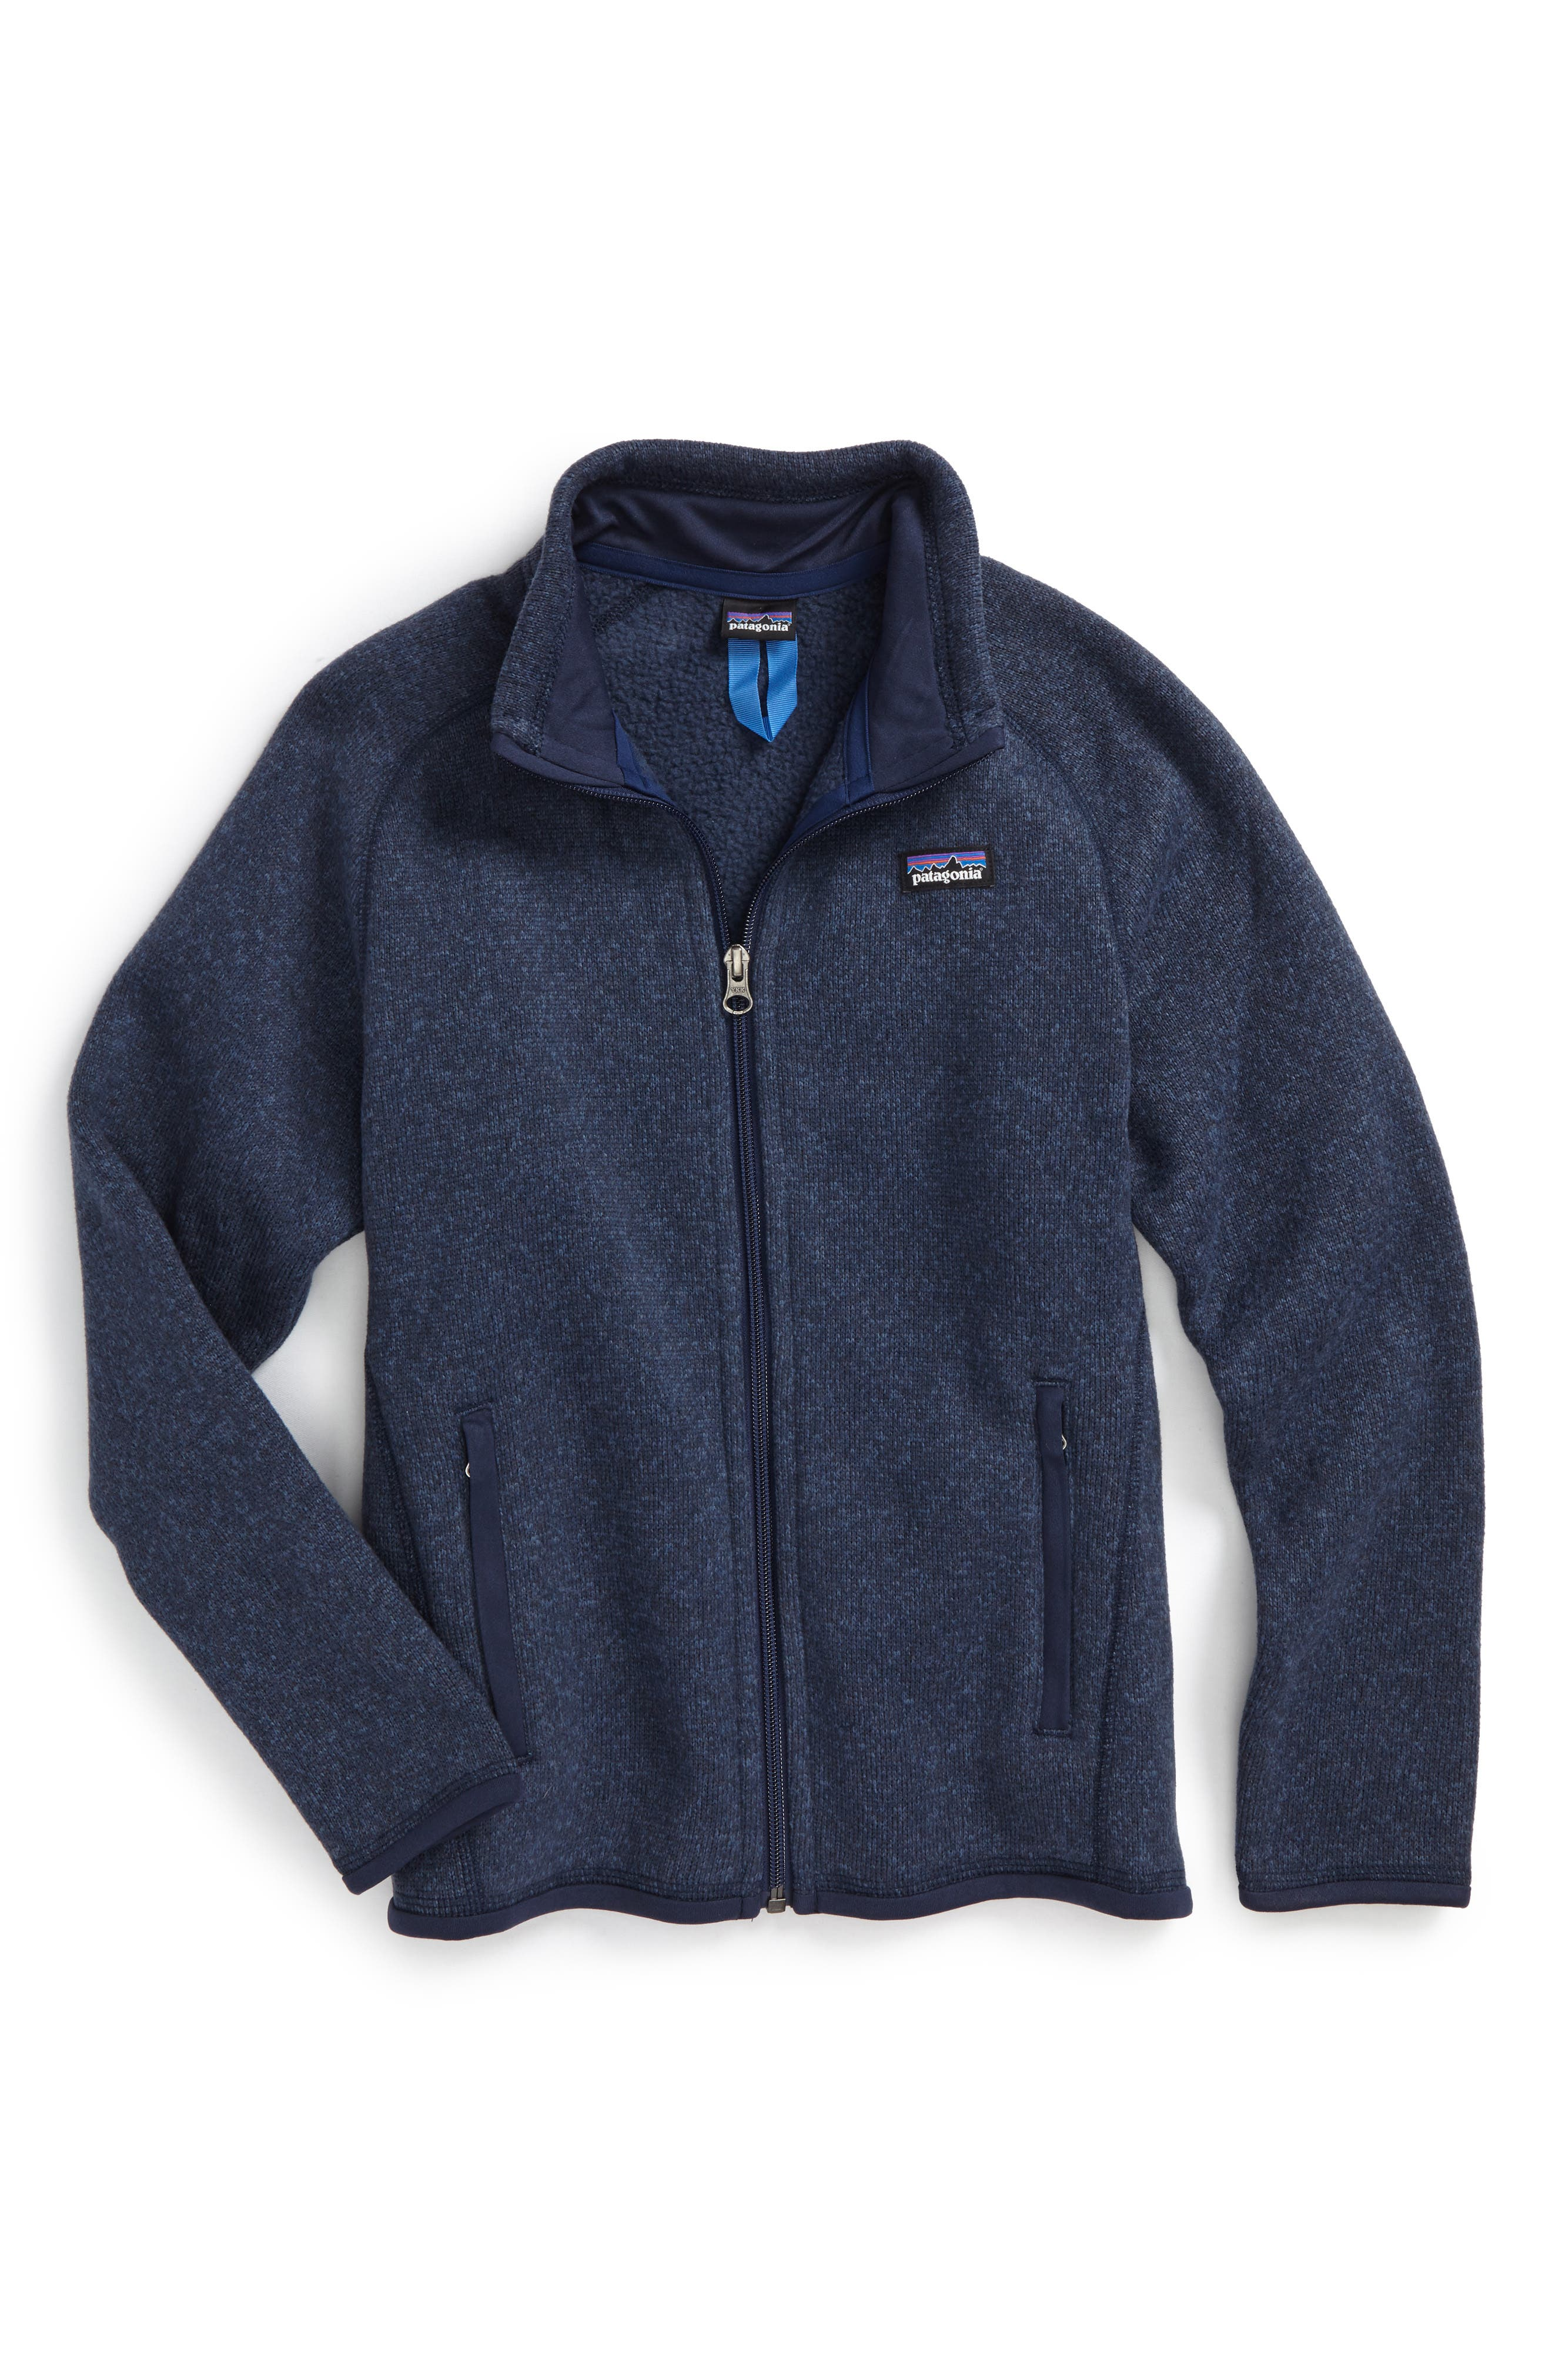 Better Sweater<sup>®</sup> Jacket,                         Main,                         color, Classic Navy